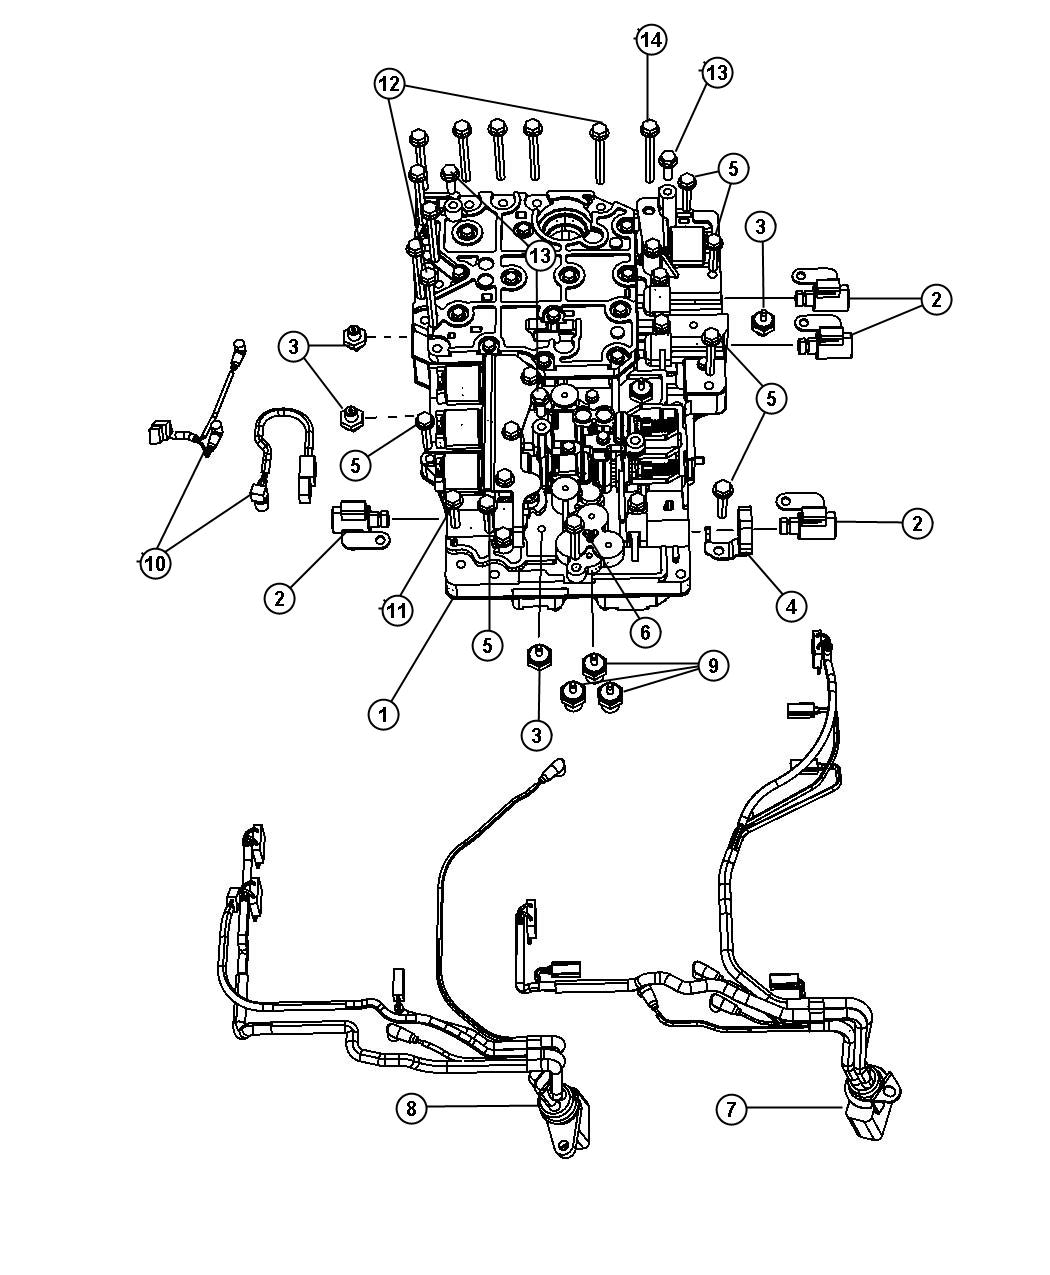 68019703ab dodge harness valve body solenoid wire to